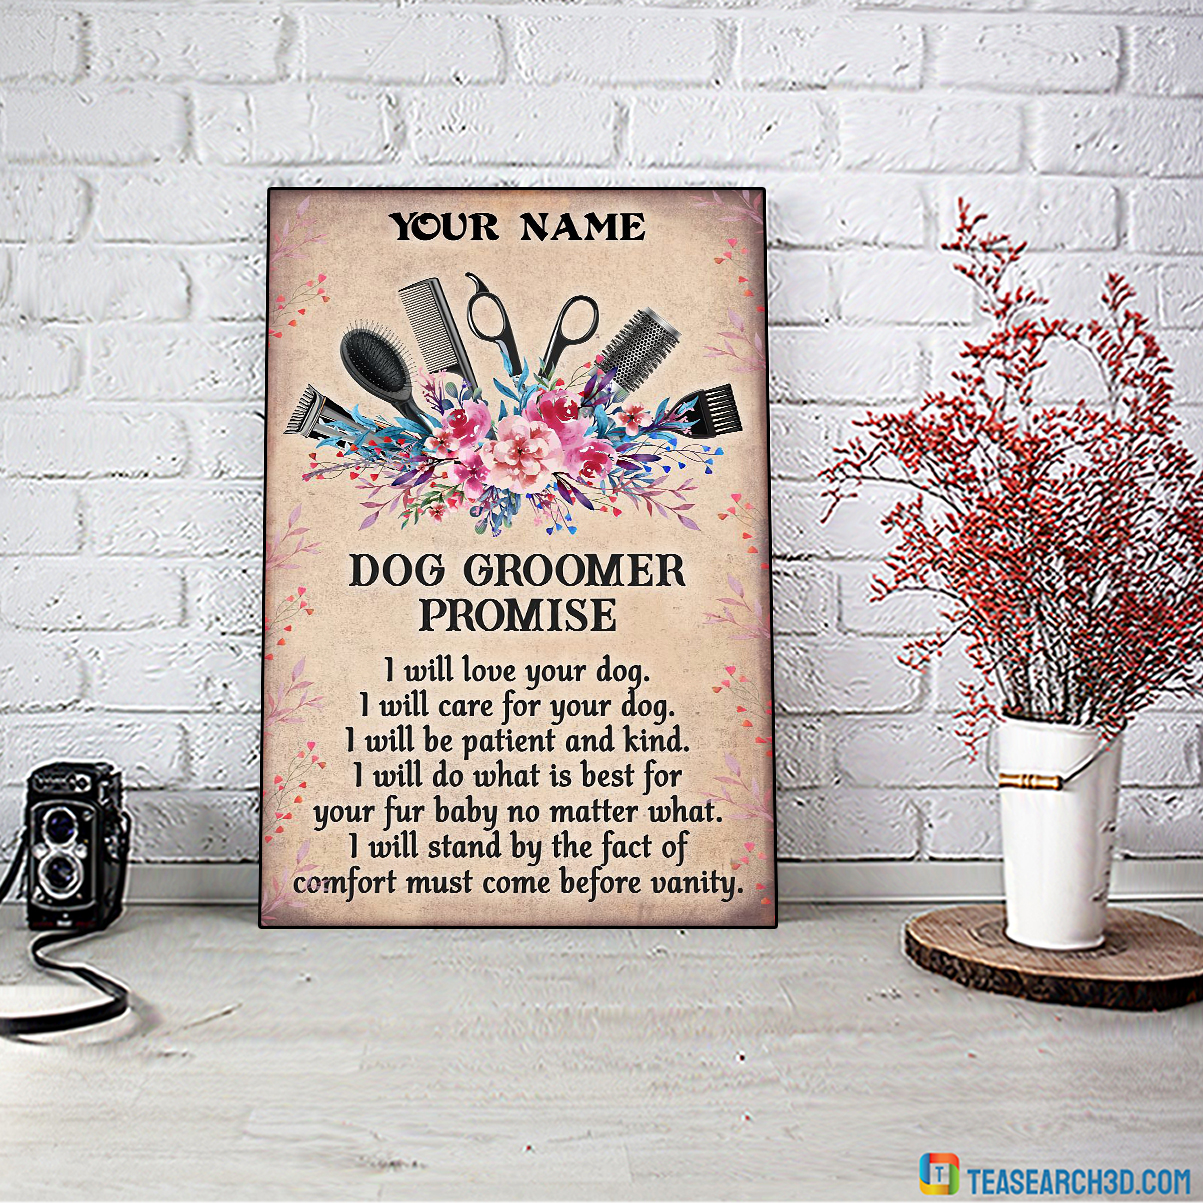 Dog groomer promise I will love your dog personalized custom name poster